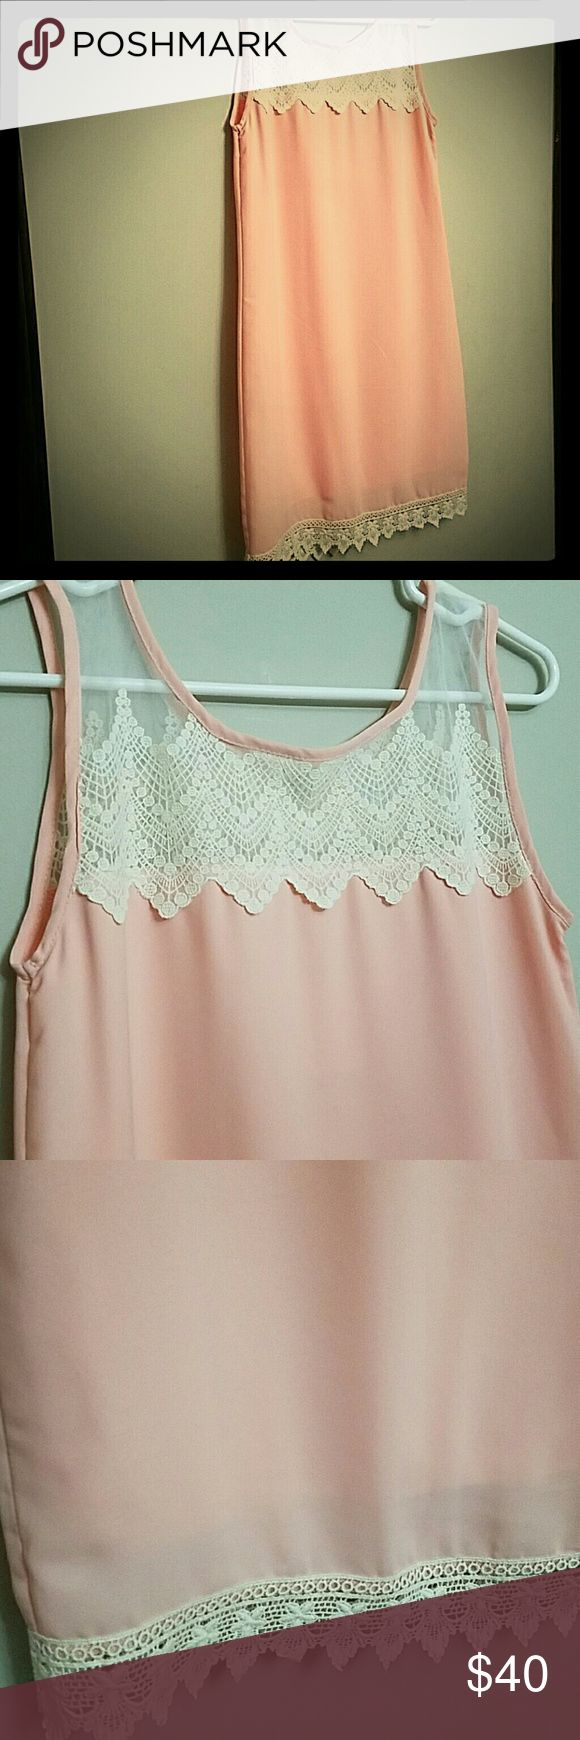 """Team Rose pink dress with lace trim Team Rose pink dress with lace trim fully lined measures 32"""" bust 34"""" waist and is 34"""" long...sweet deal on a super dress just in time for Easter! Tea n' Rose Dresses Mini"""